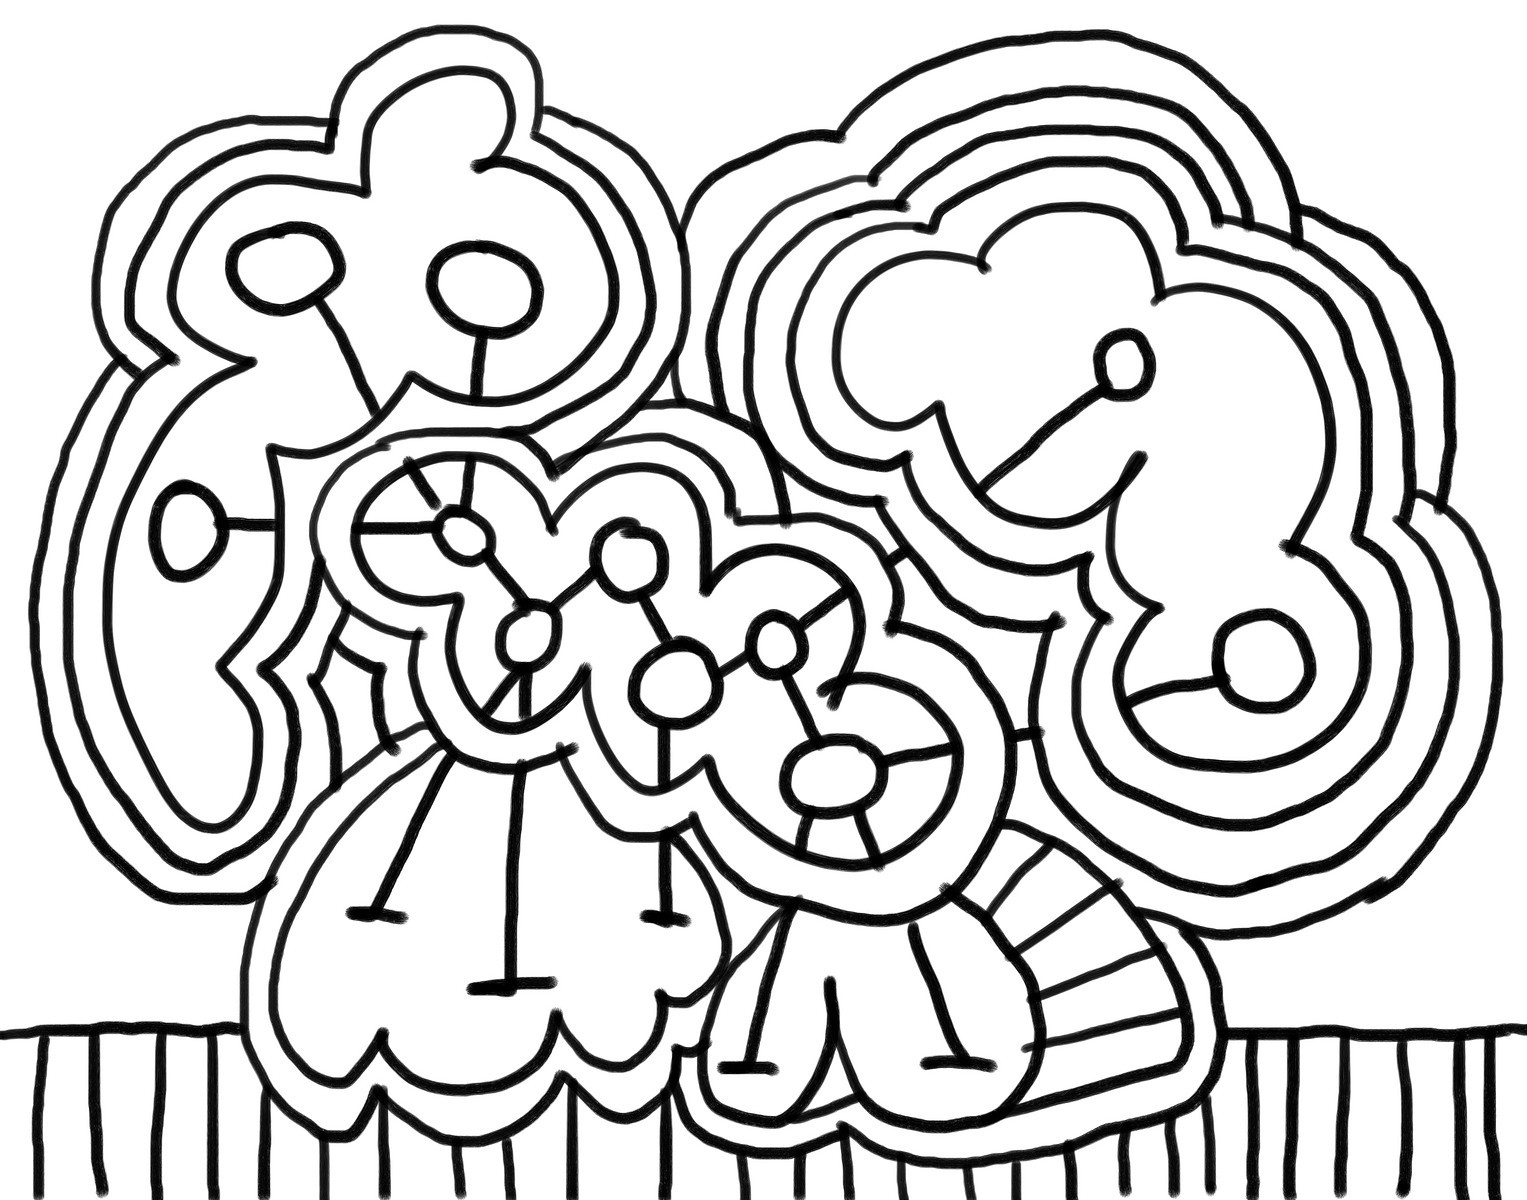 1527x1200 Coloring Page For Creativity